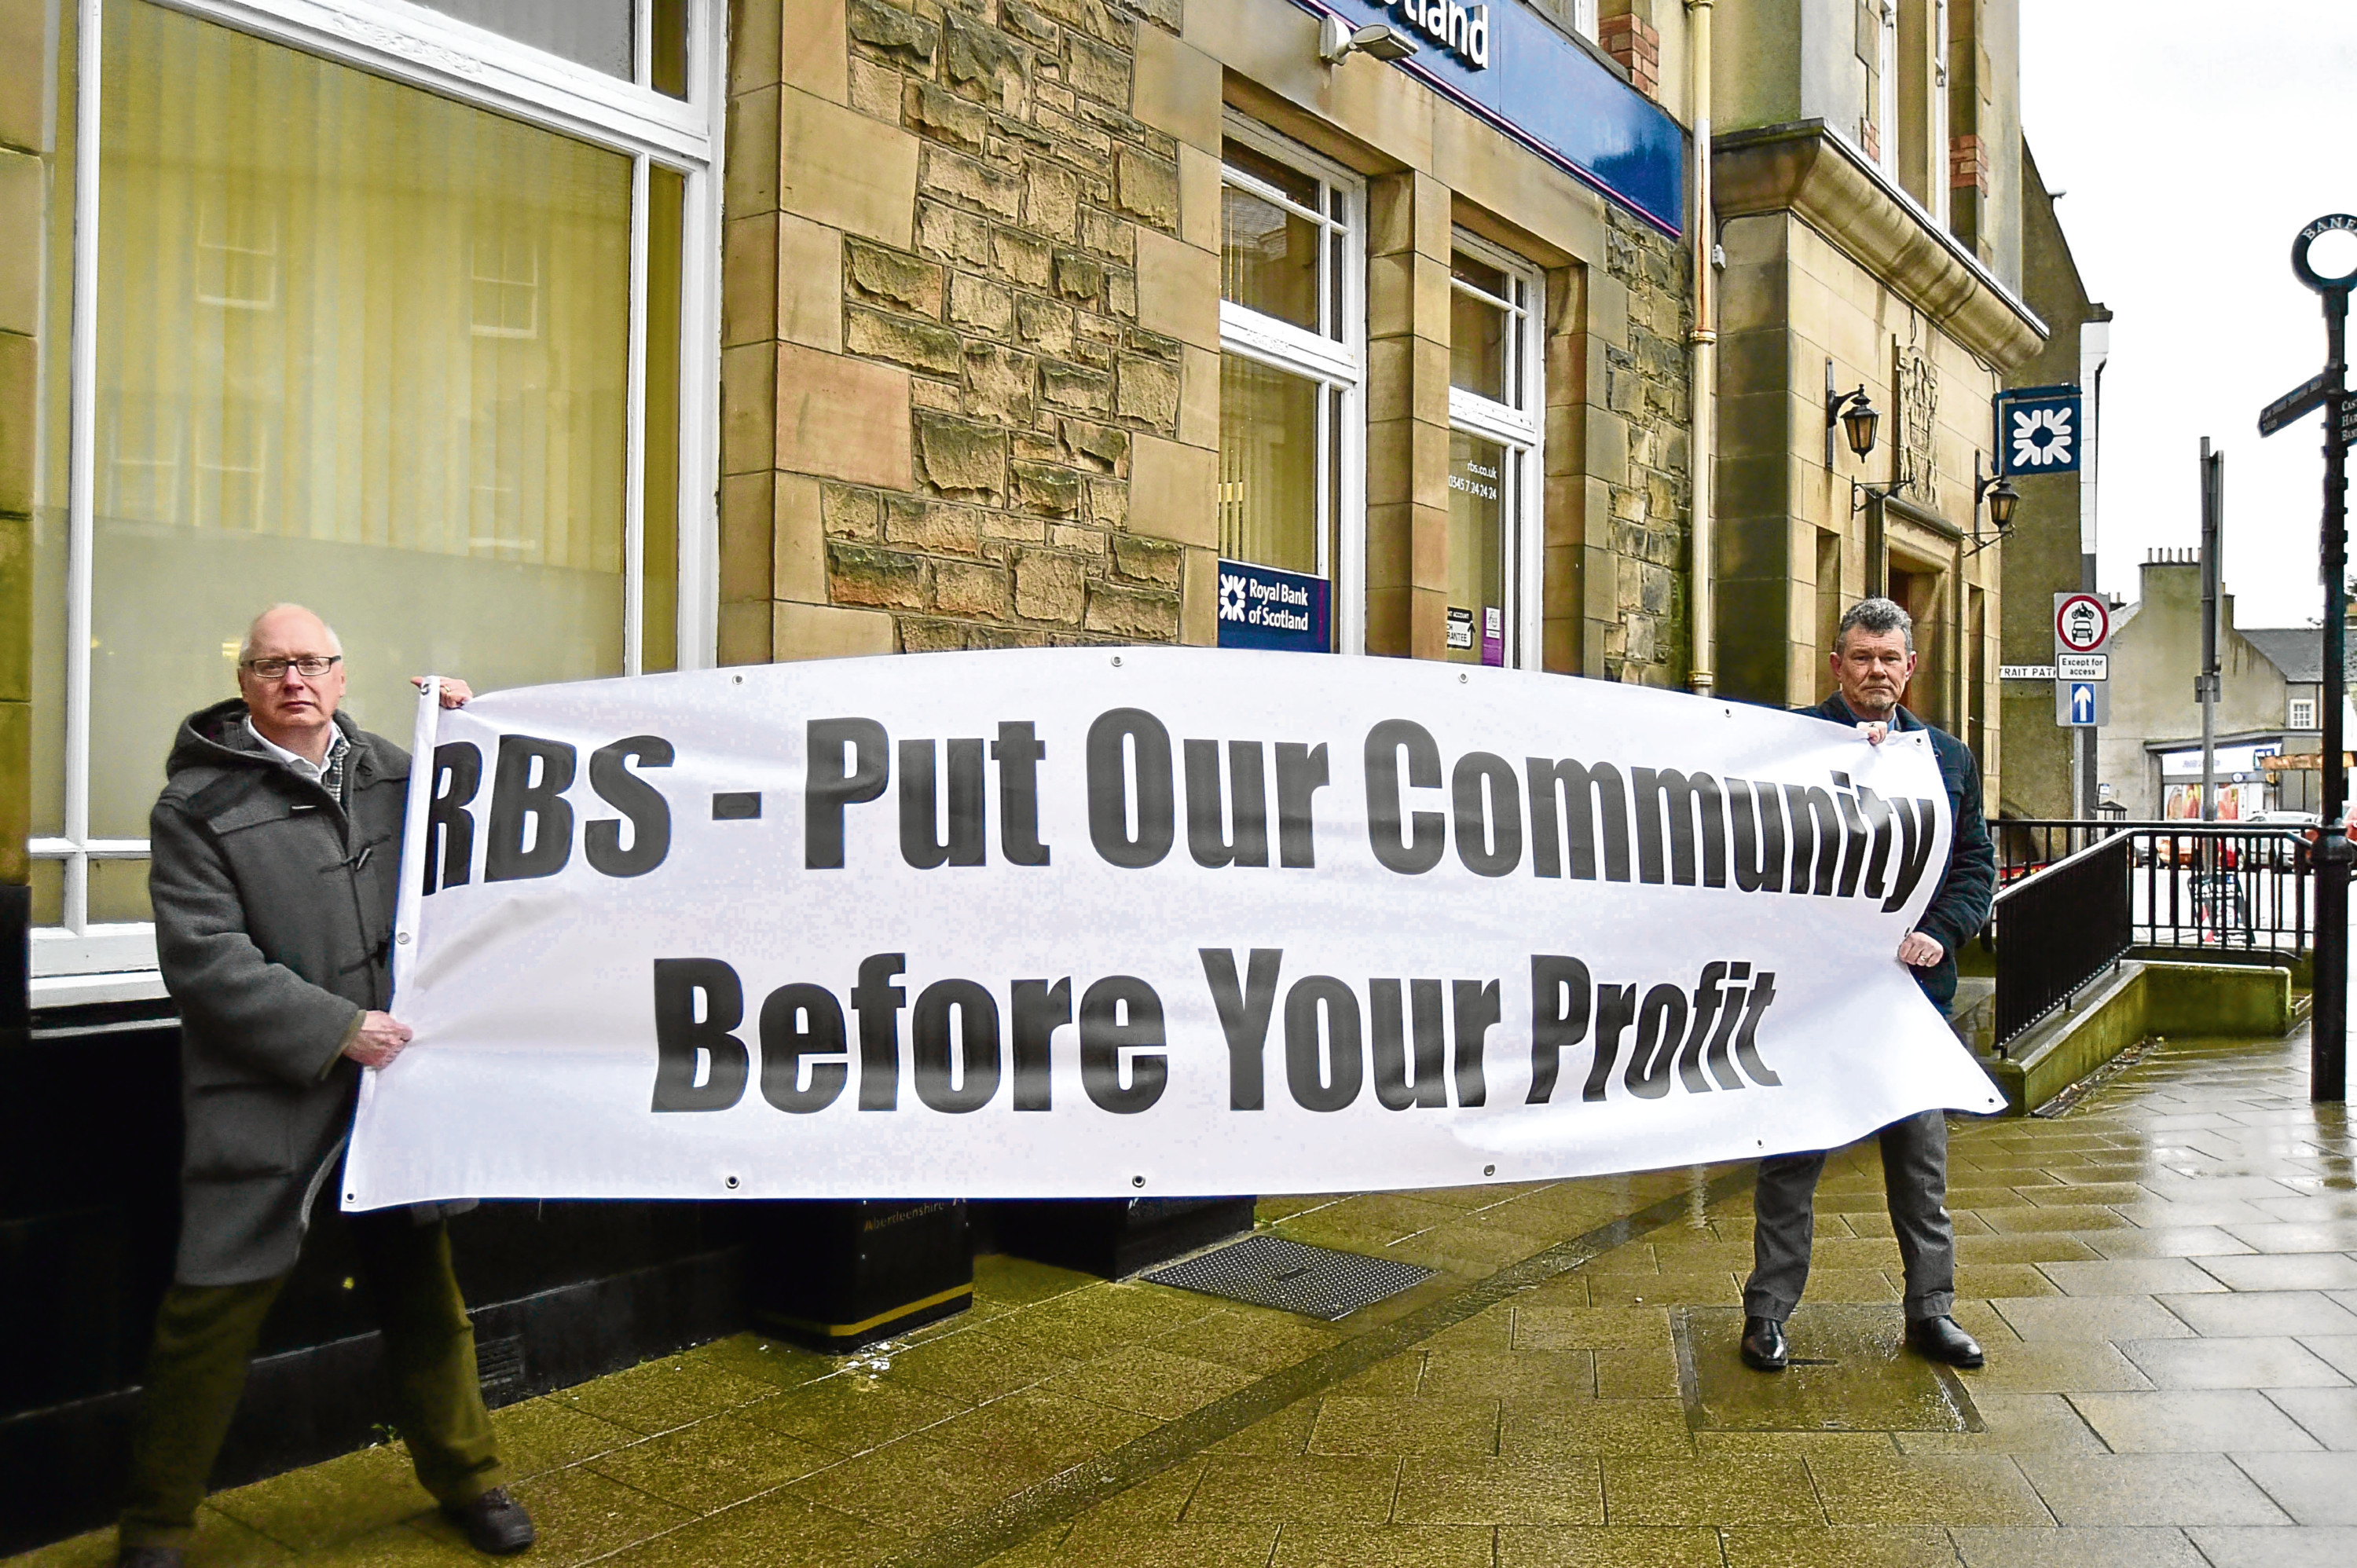 Cllrs Glen Reynolds and Ross Cassie demonstrate outside the RBS in Banff